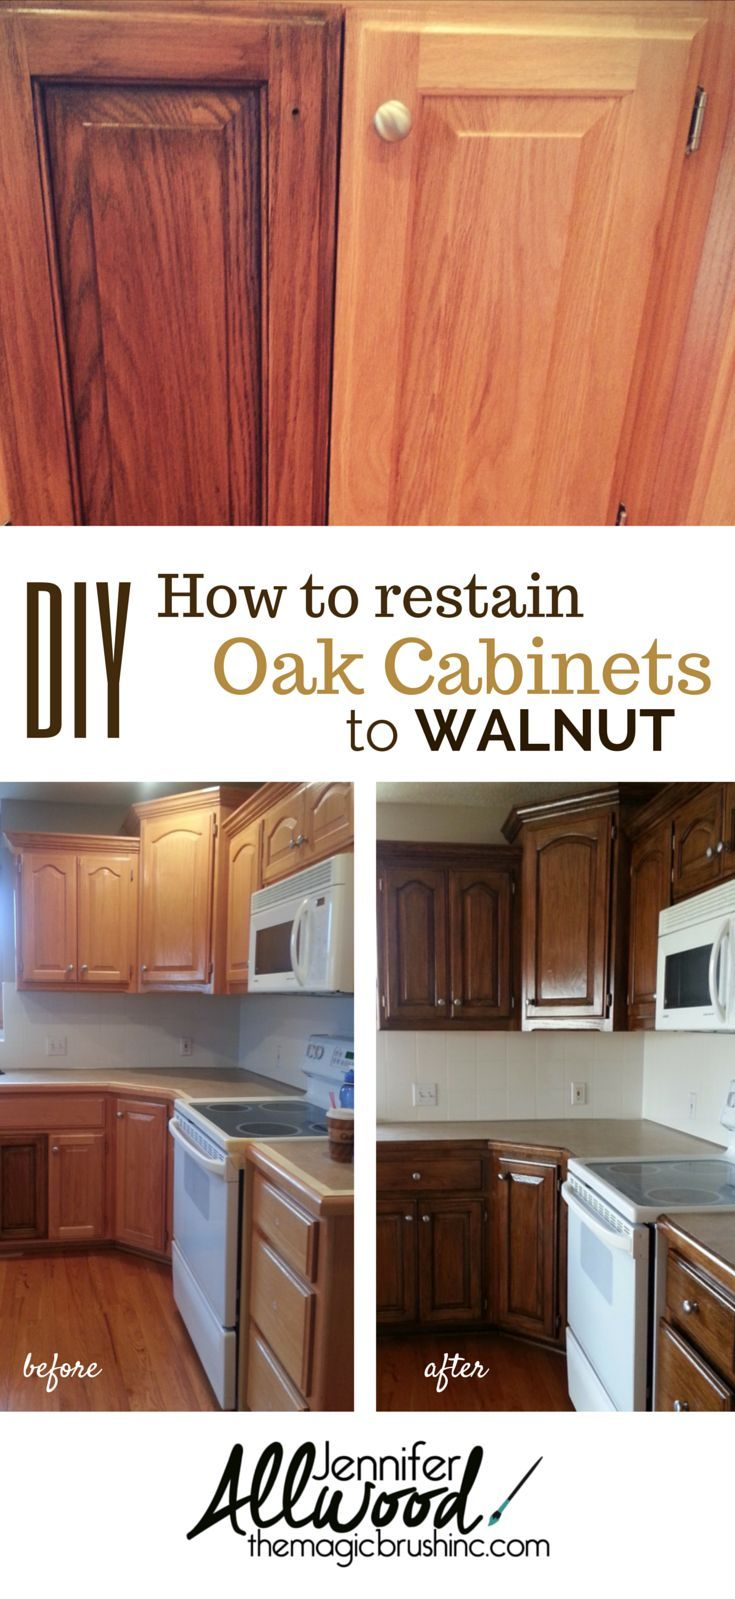 Oak Cabinet Kitchen on Pinterest  Oak Kitchen Remodel, Oak Cabinets